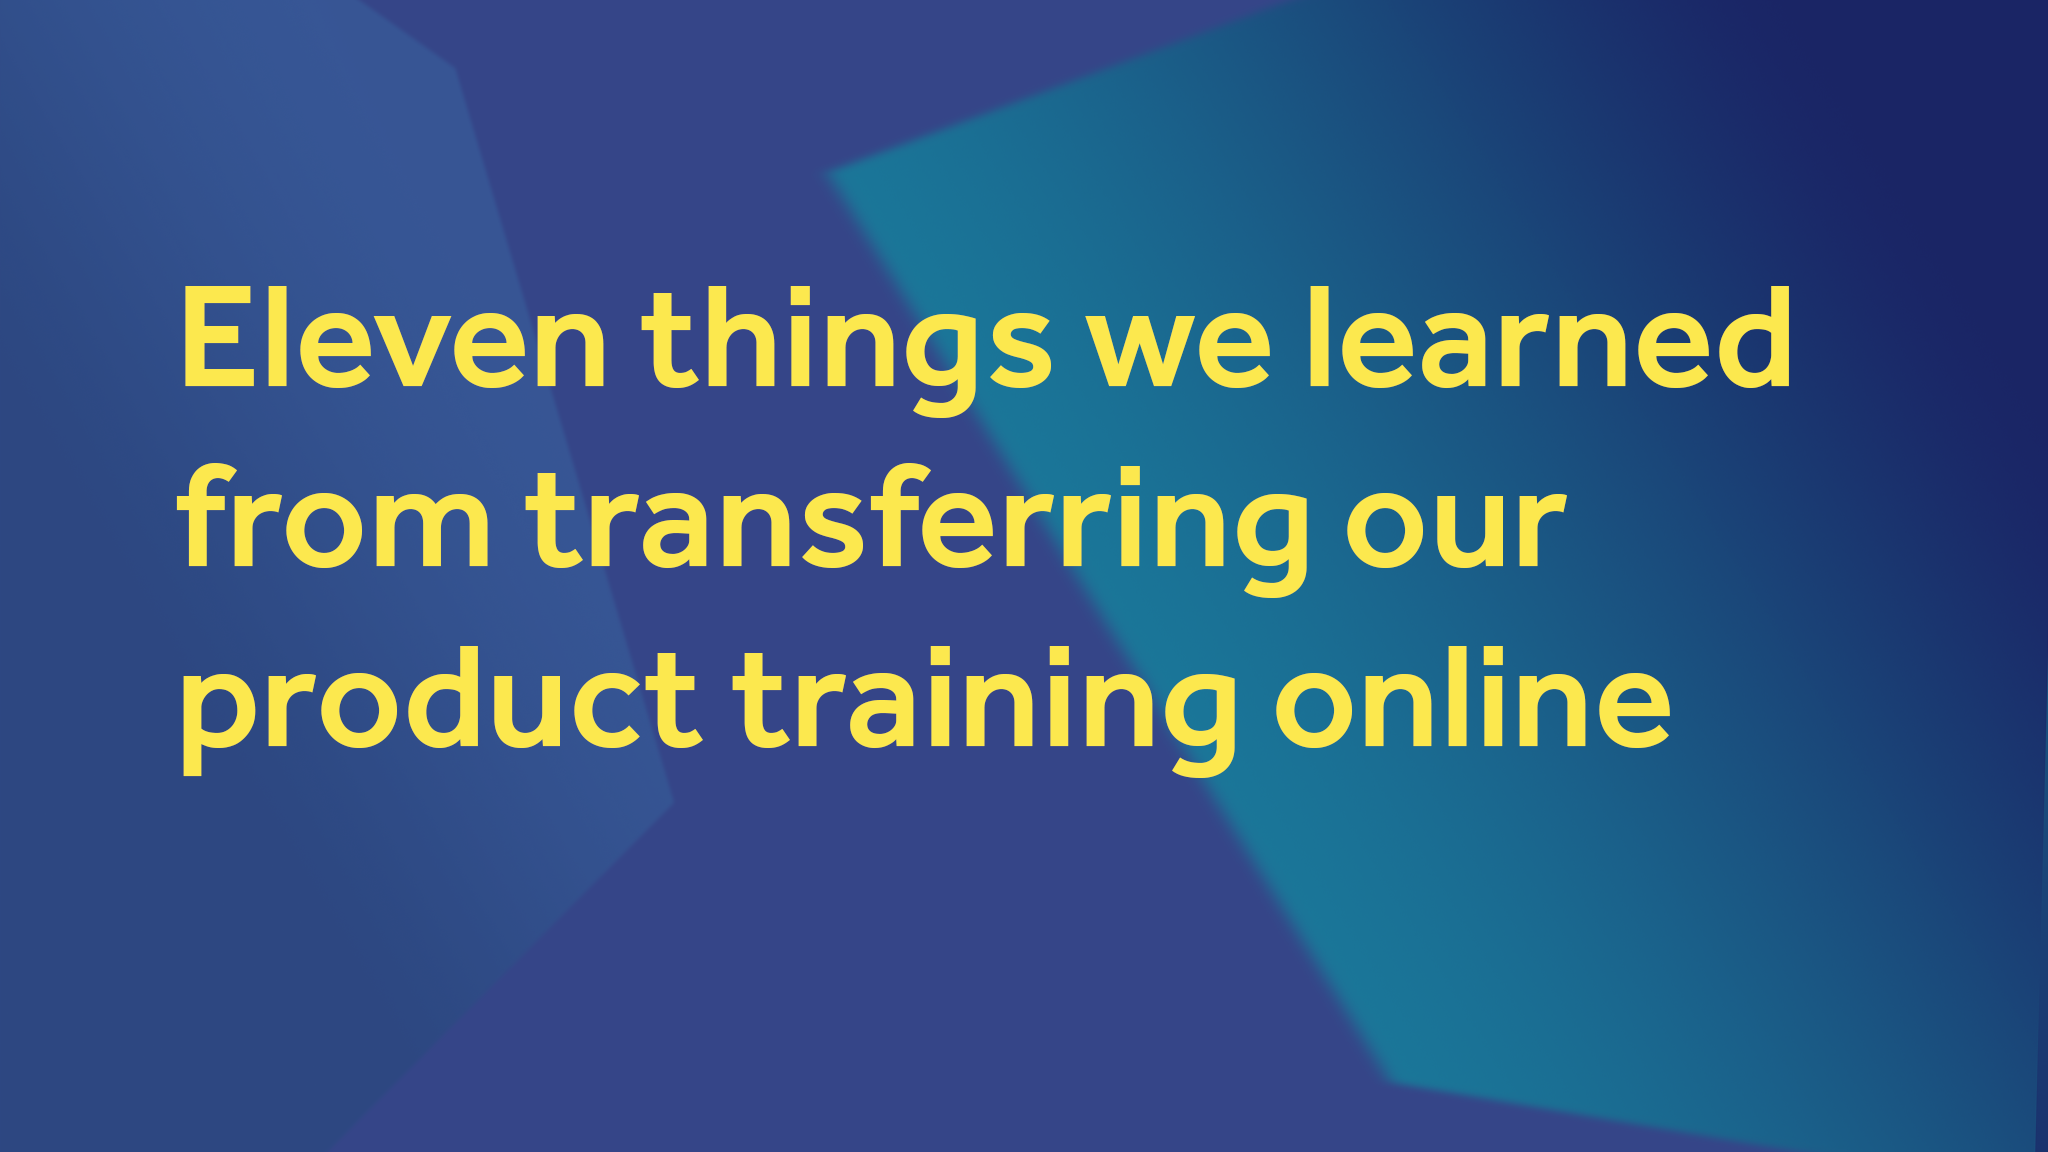 Eleven Things We Learned From Transferring Our Product Training Online